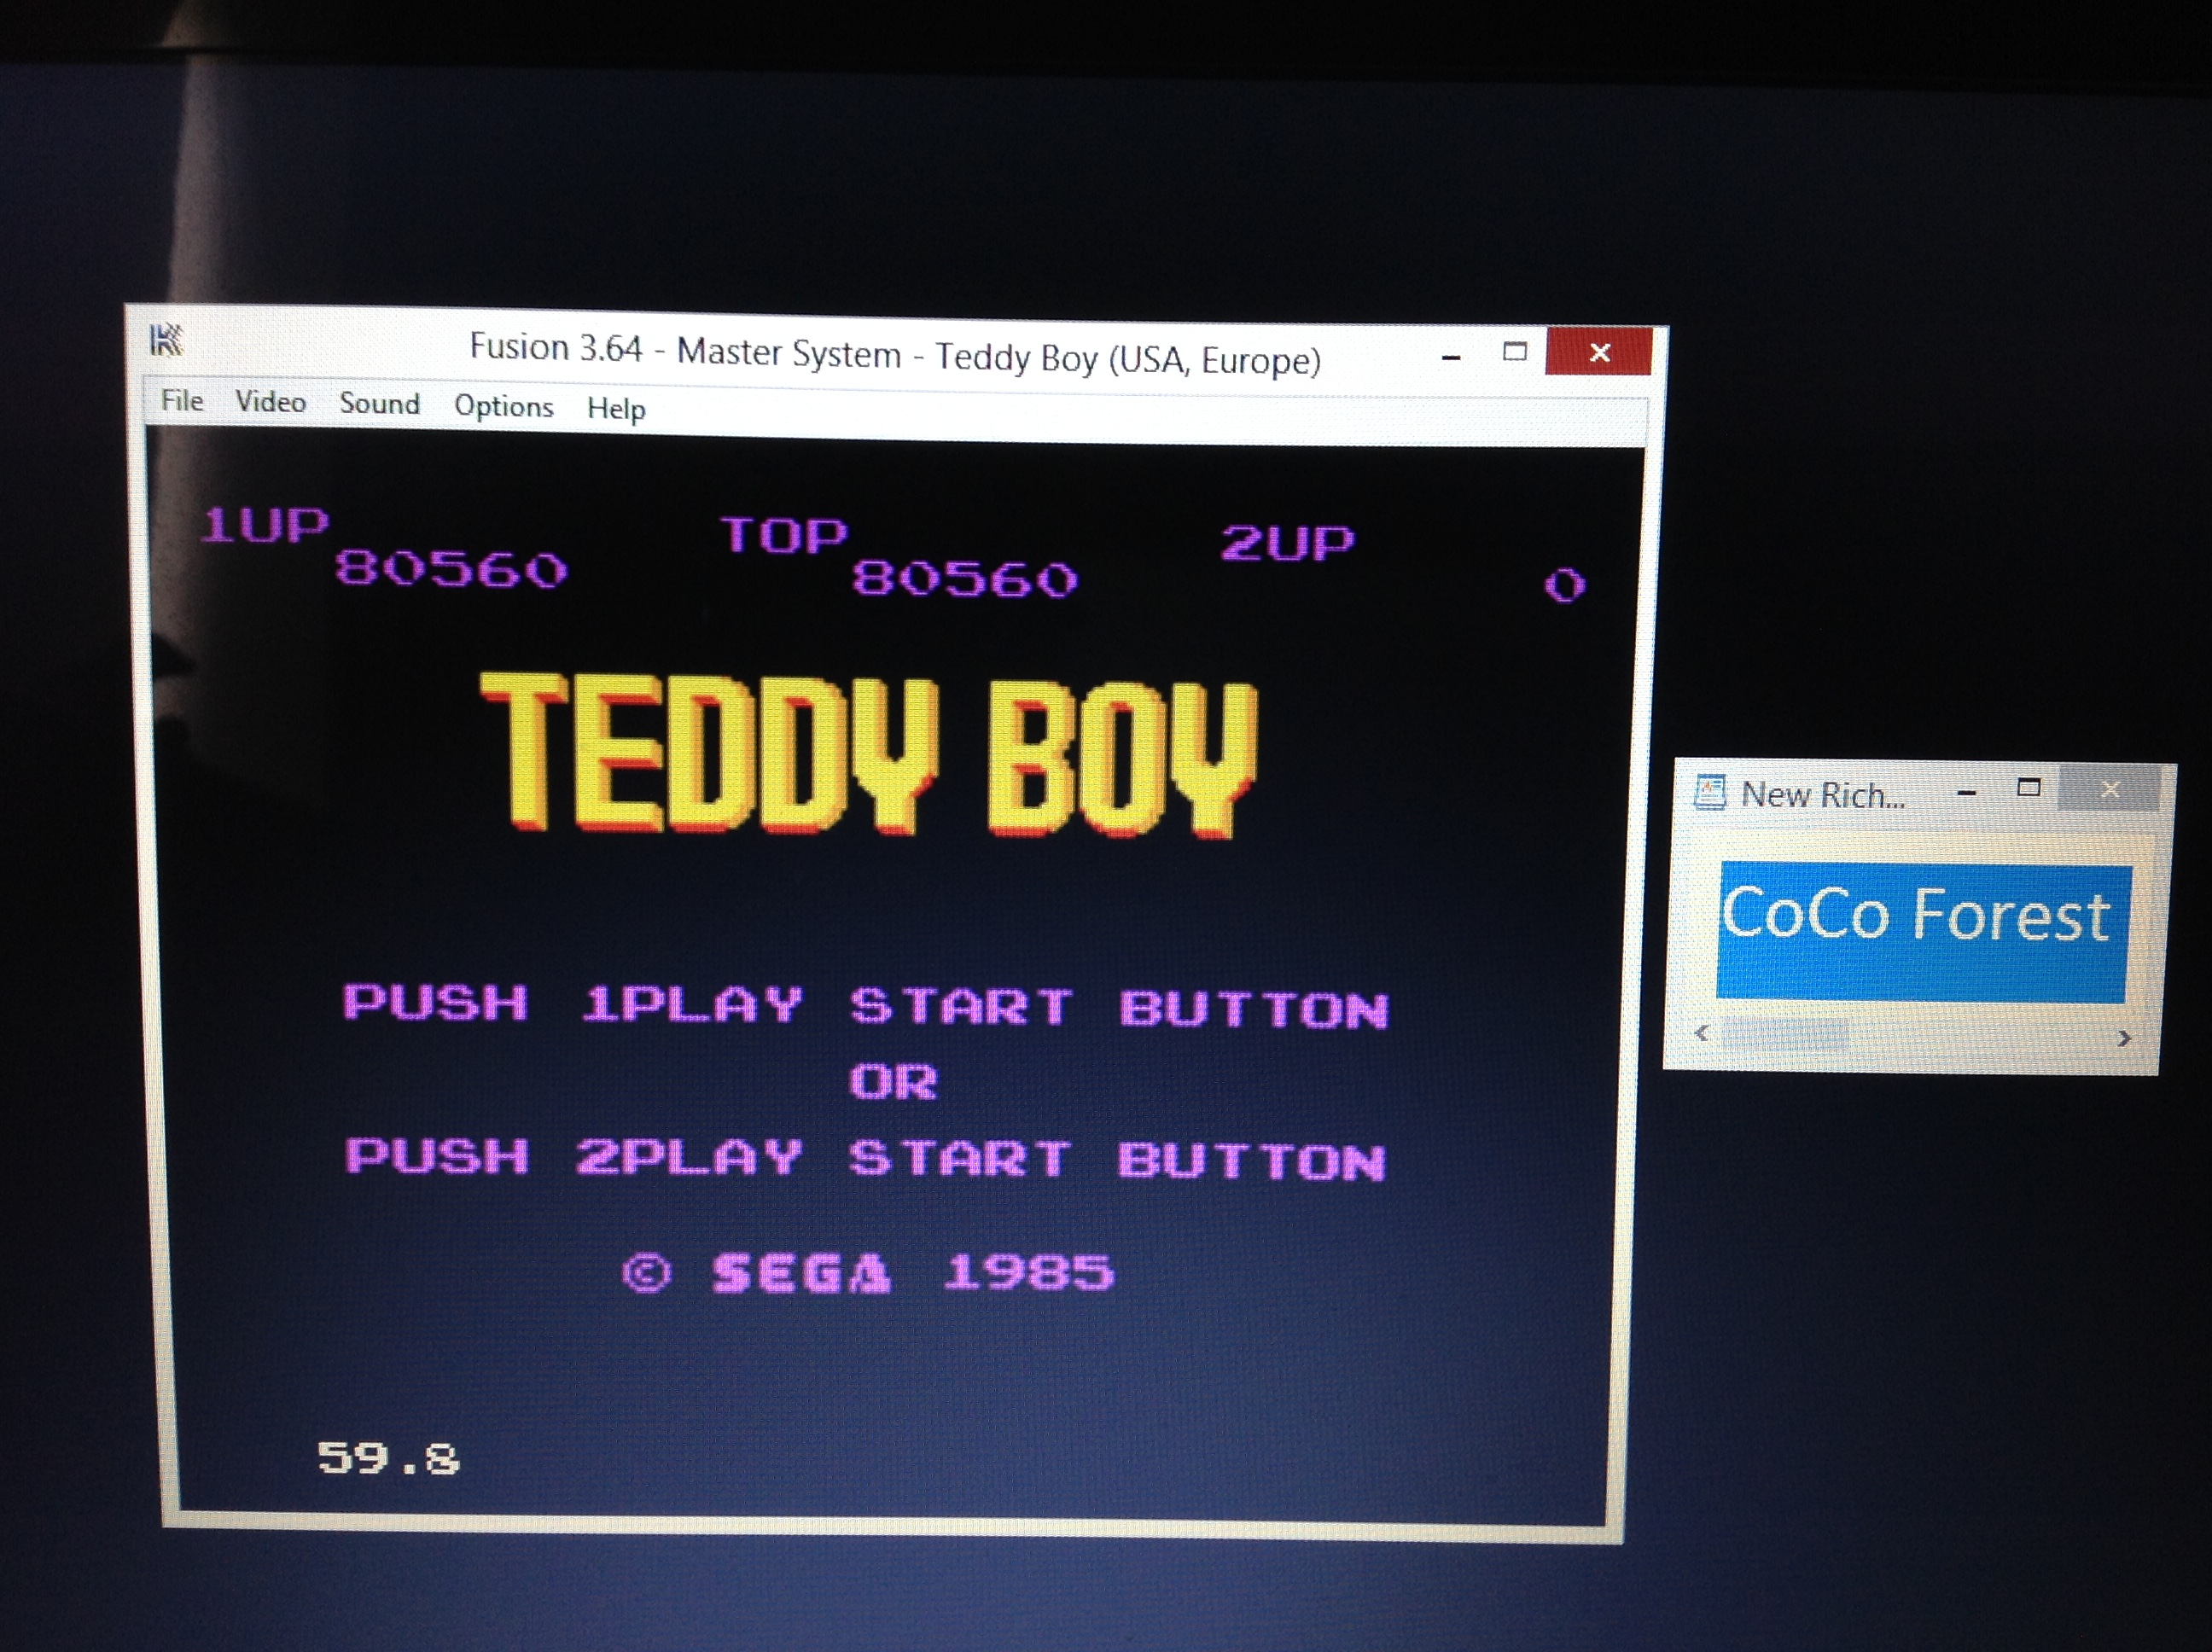 CoCoForest: Teddy Boy (Sega Master System Emulated) 80,560 points on 2018-10-11 03:13:03